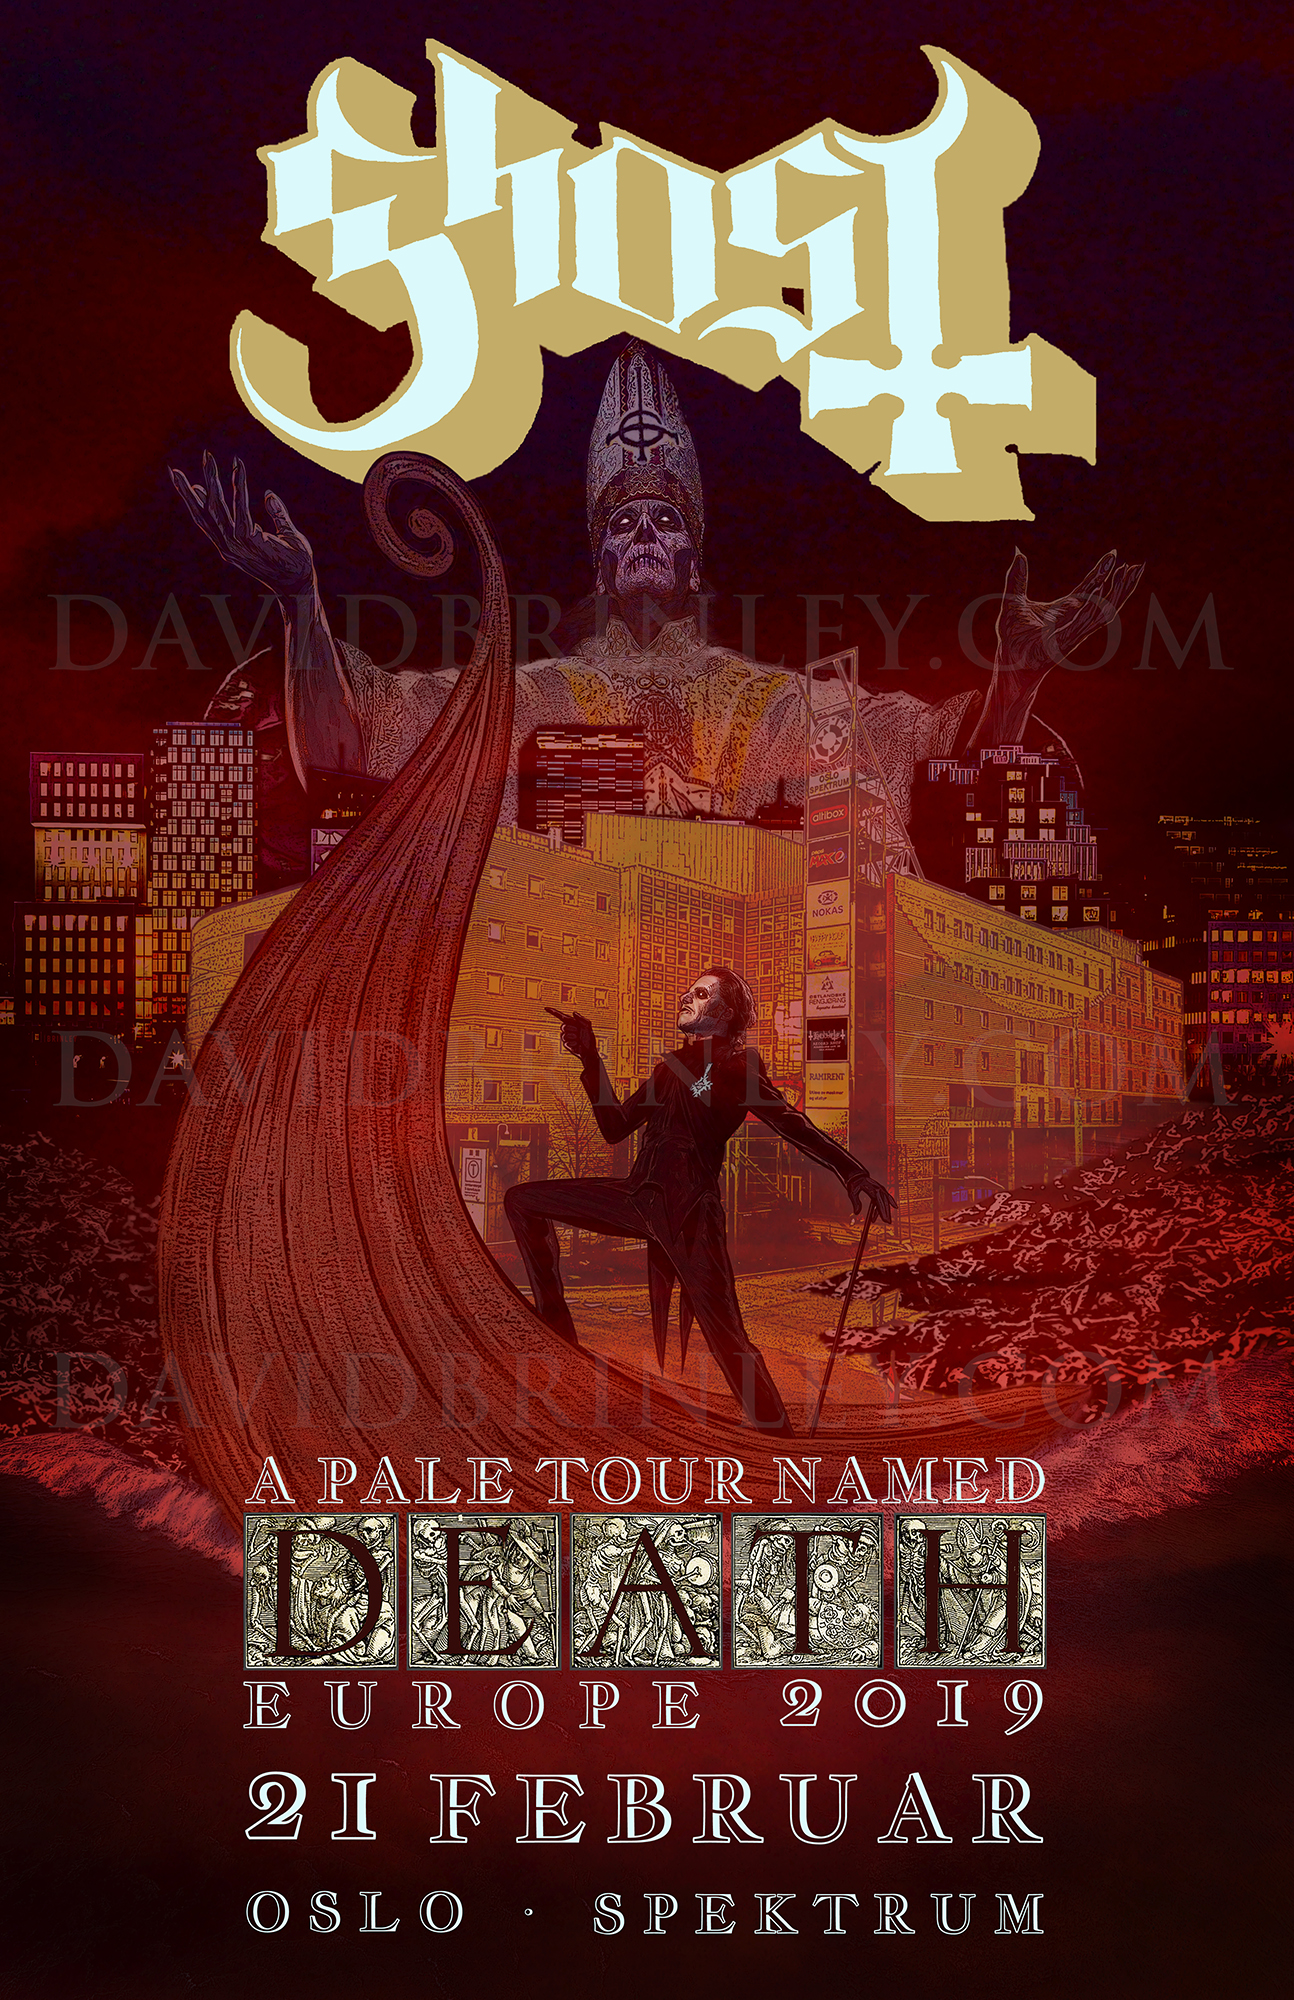 GHOST | Oslo Norway Spektrum | February 21, 2019   A Pale Tour Named Death Official poster  David M. Brinley | Illustrator Designer  Acrylic and Digital